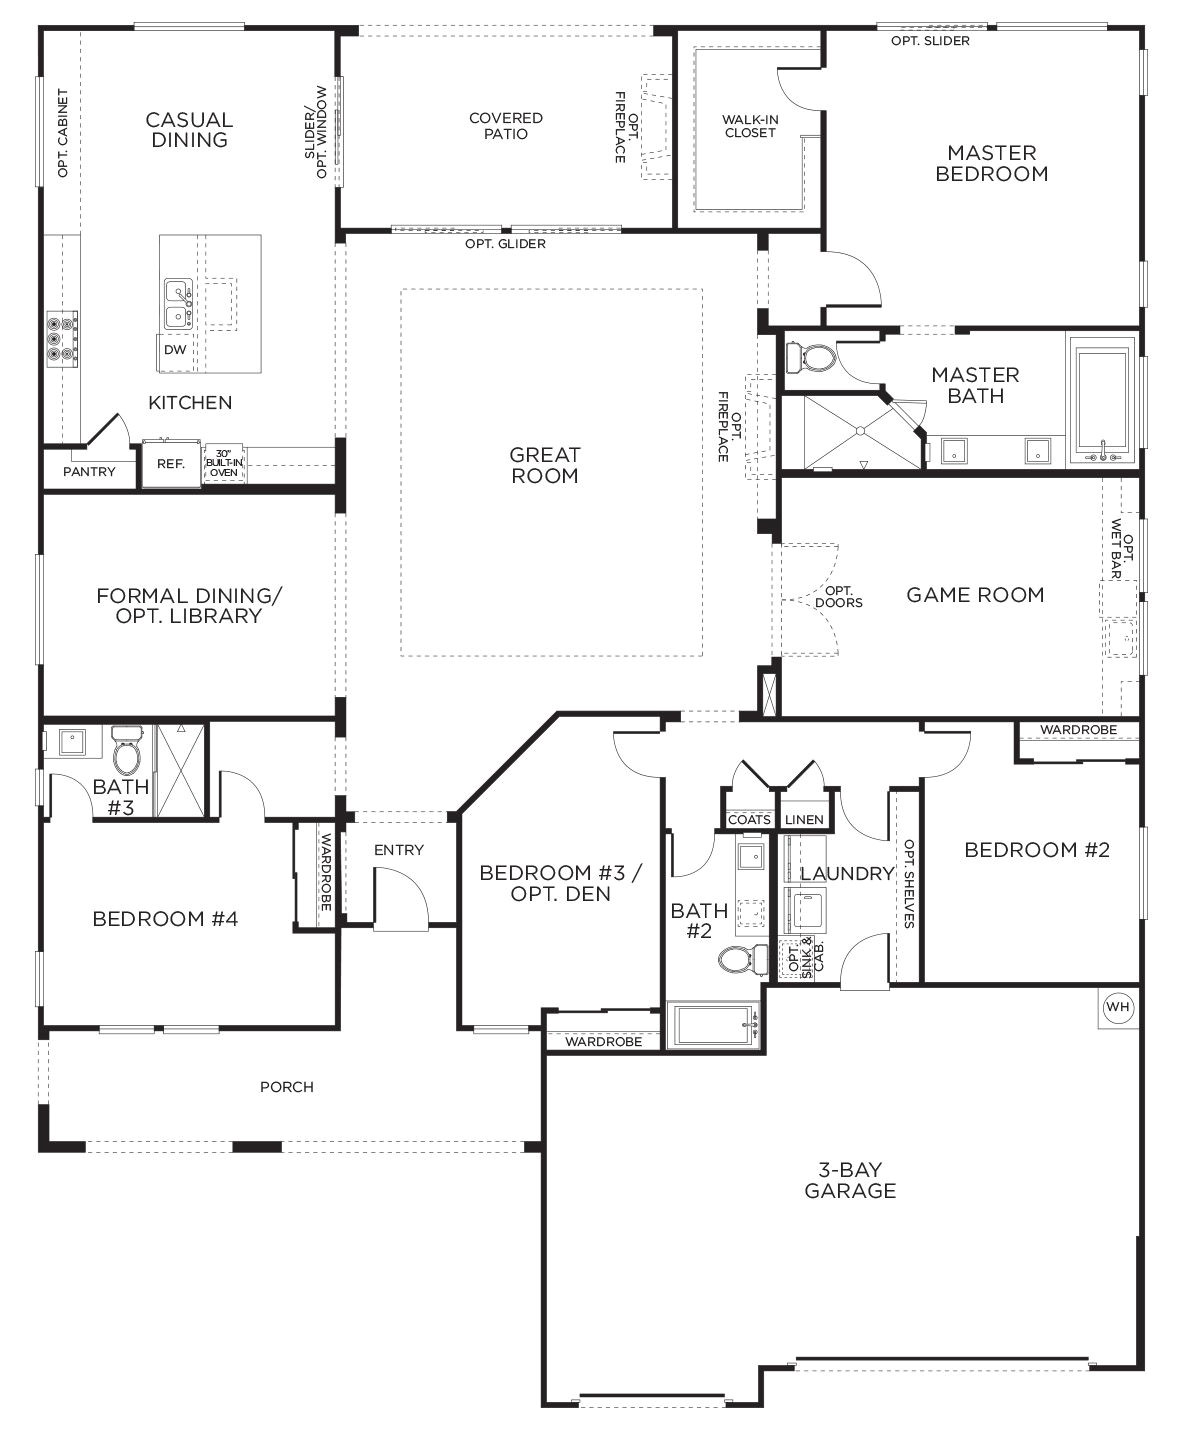 Floor Plans for 1 Story Homes Love This Layout with Extra Rooms Single Story Floor